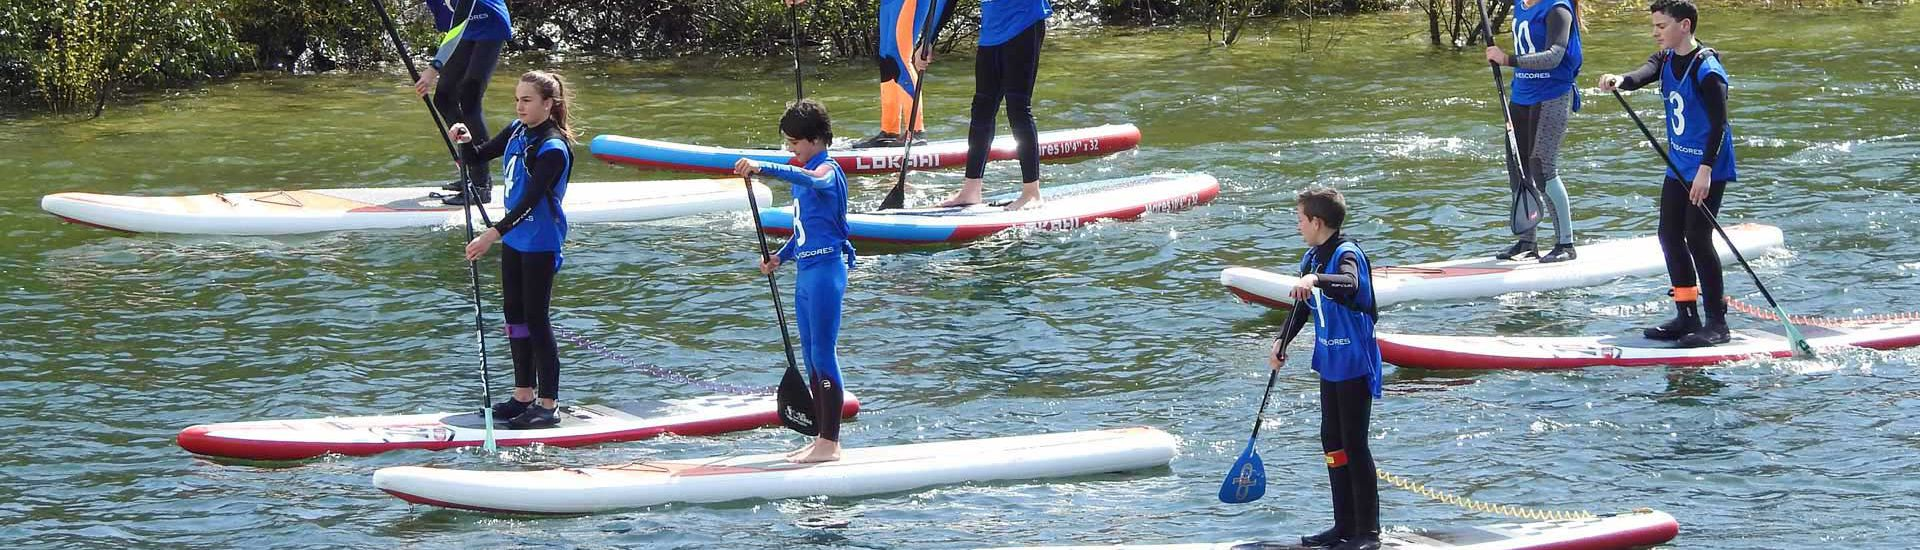 Paddle Surf Camp Barcelona e571813de8f